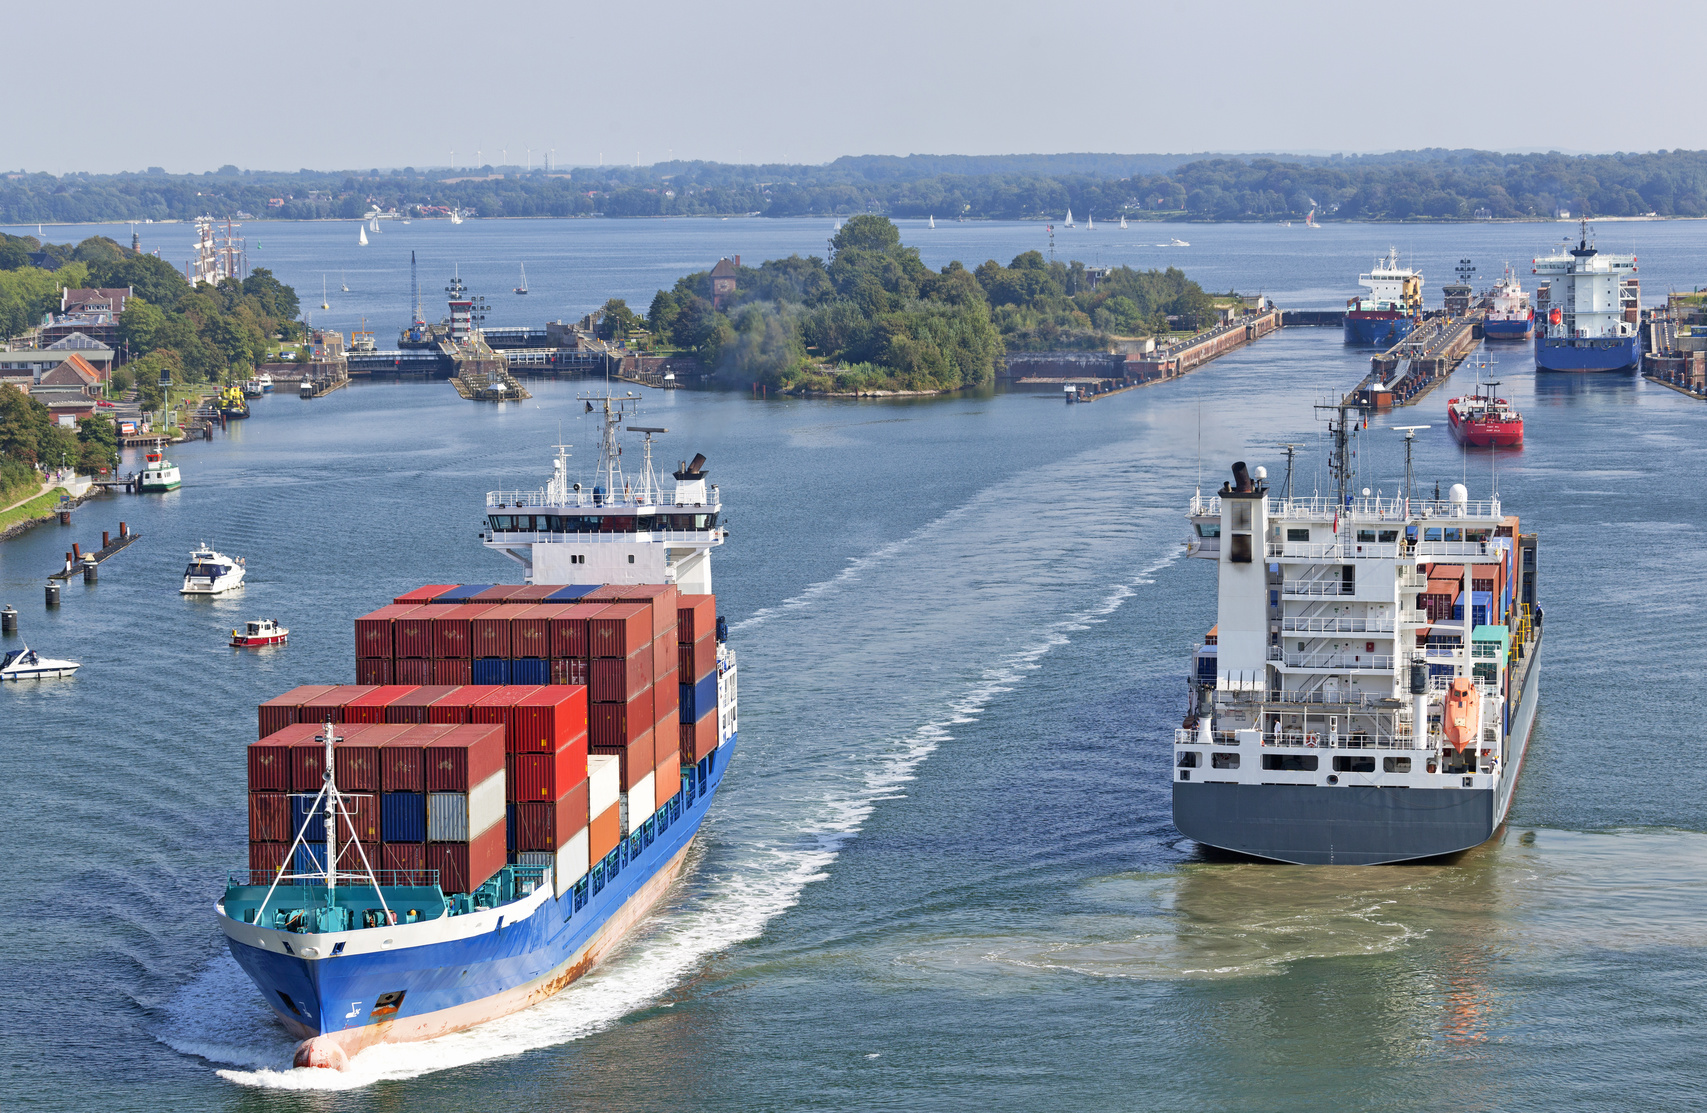 German government: support the Kiel Canal with millions of dollars